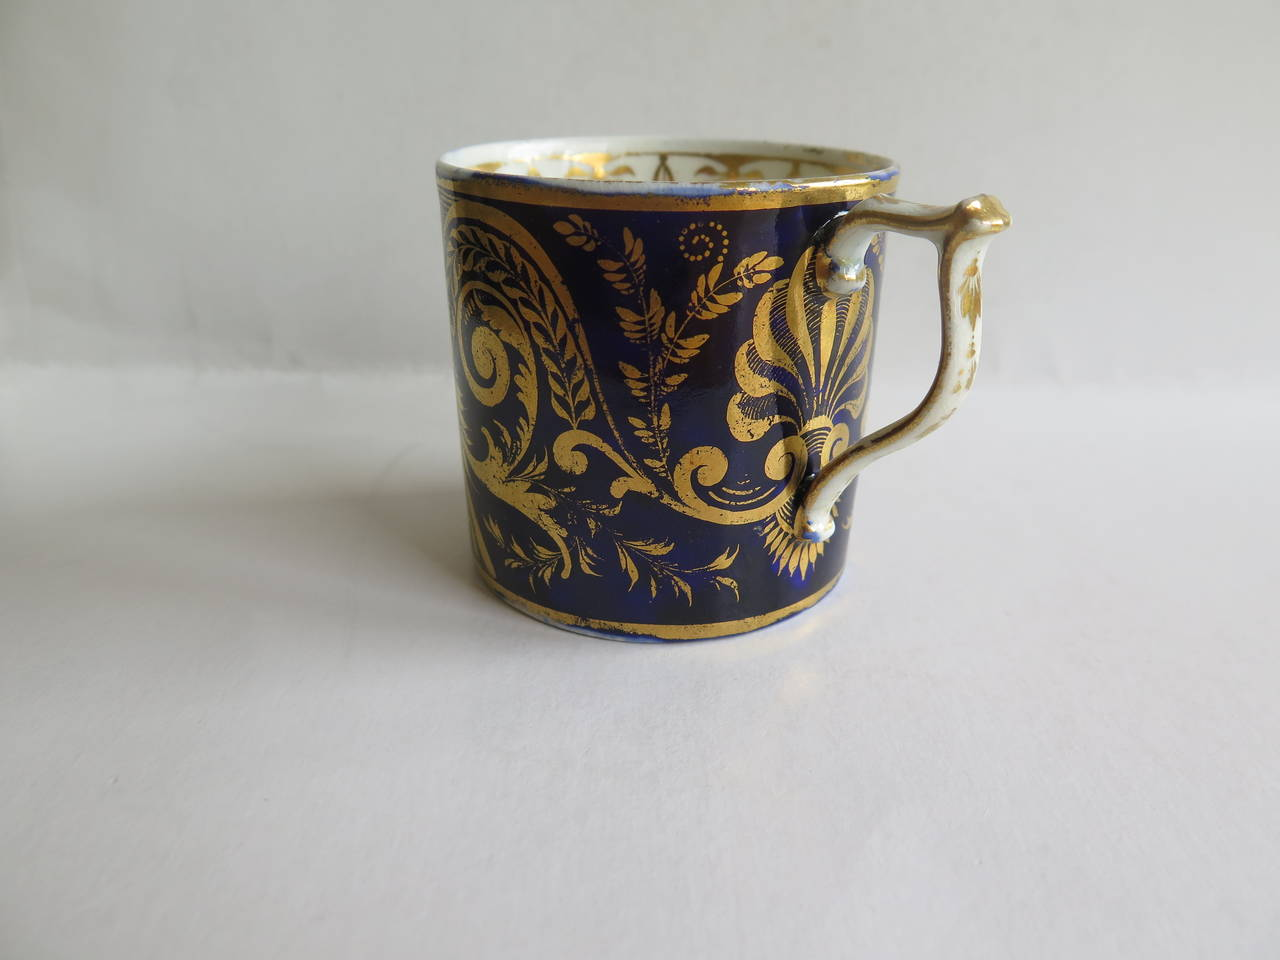 George III George 111rd Derby Coffee Can Hand-Painted Named View Near Edmonton, Ca 1810 For Sale